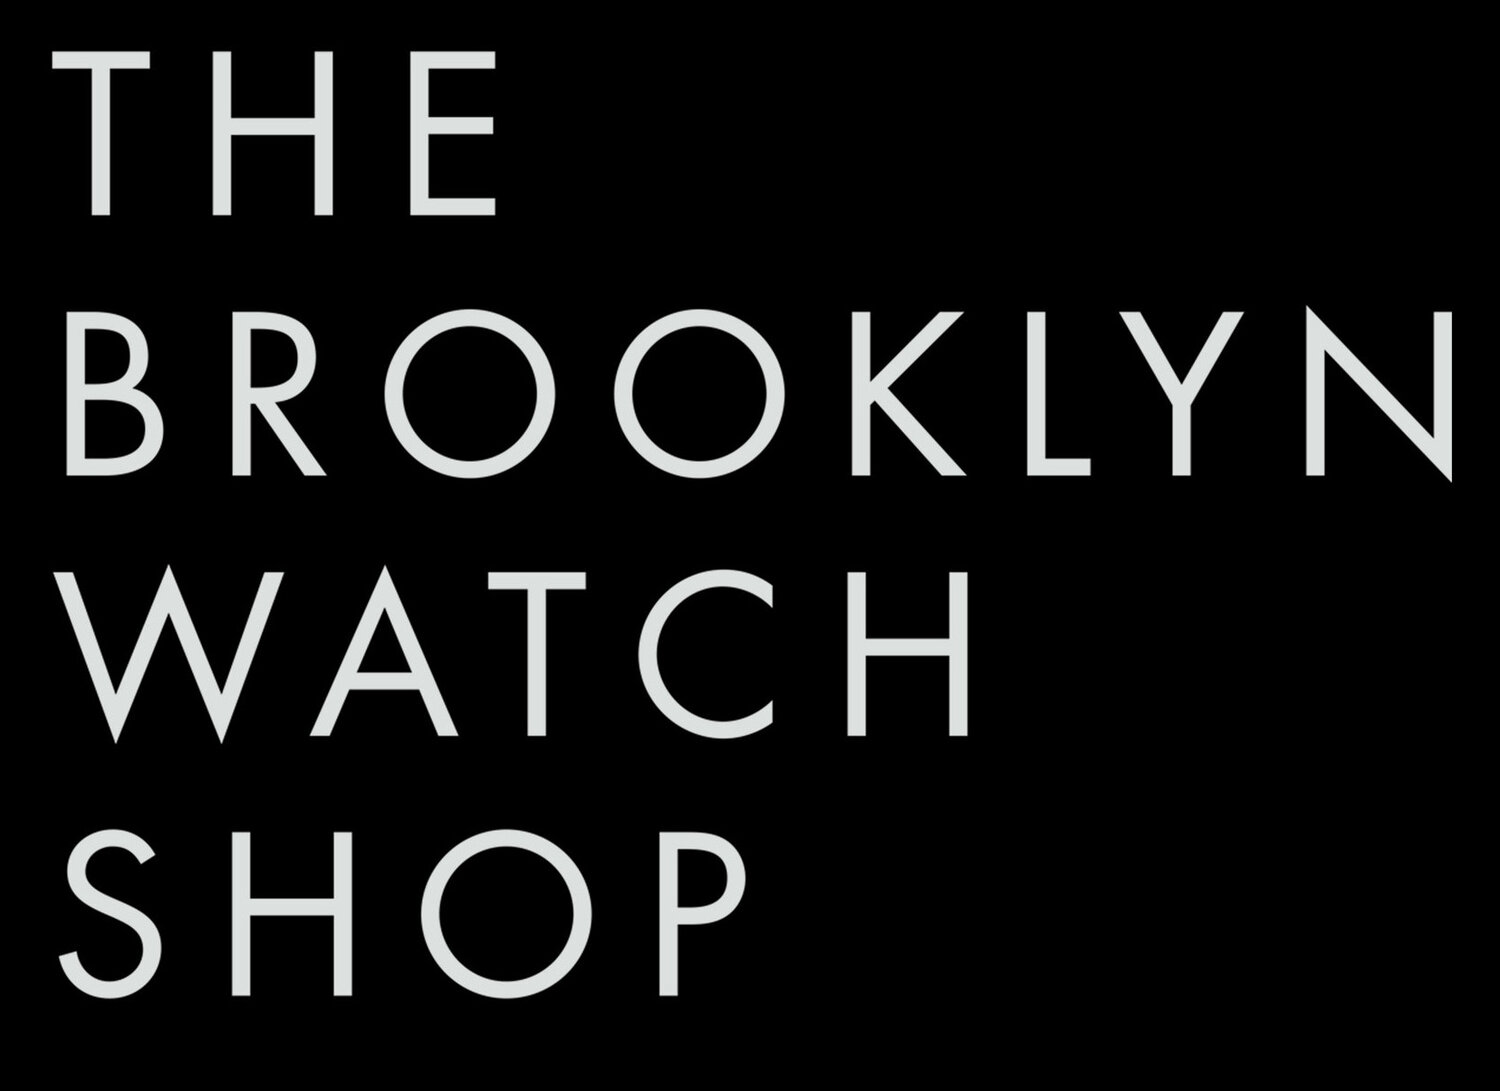 THE BROOKLYN WATCH SHOP